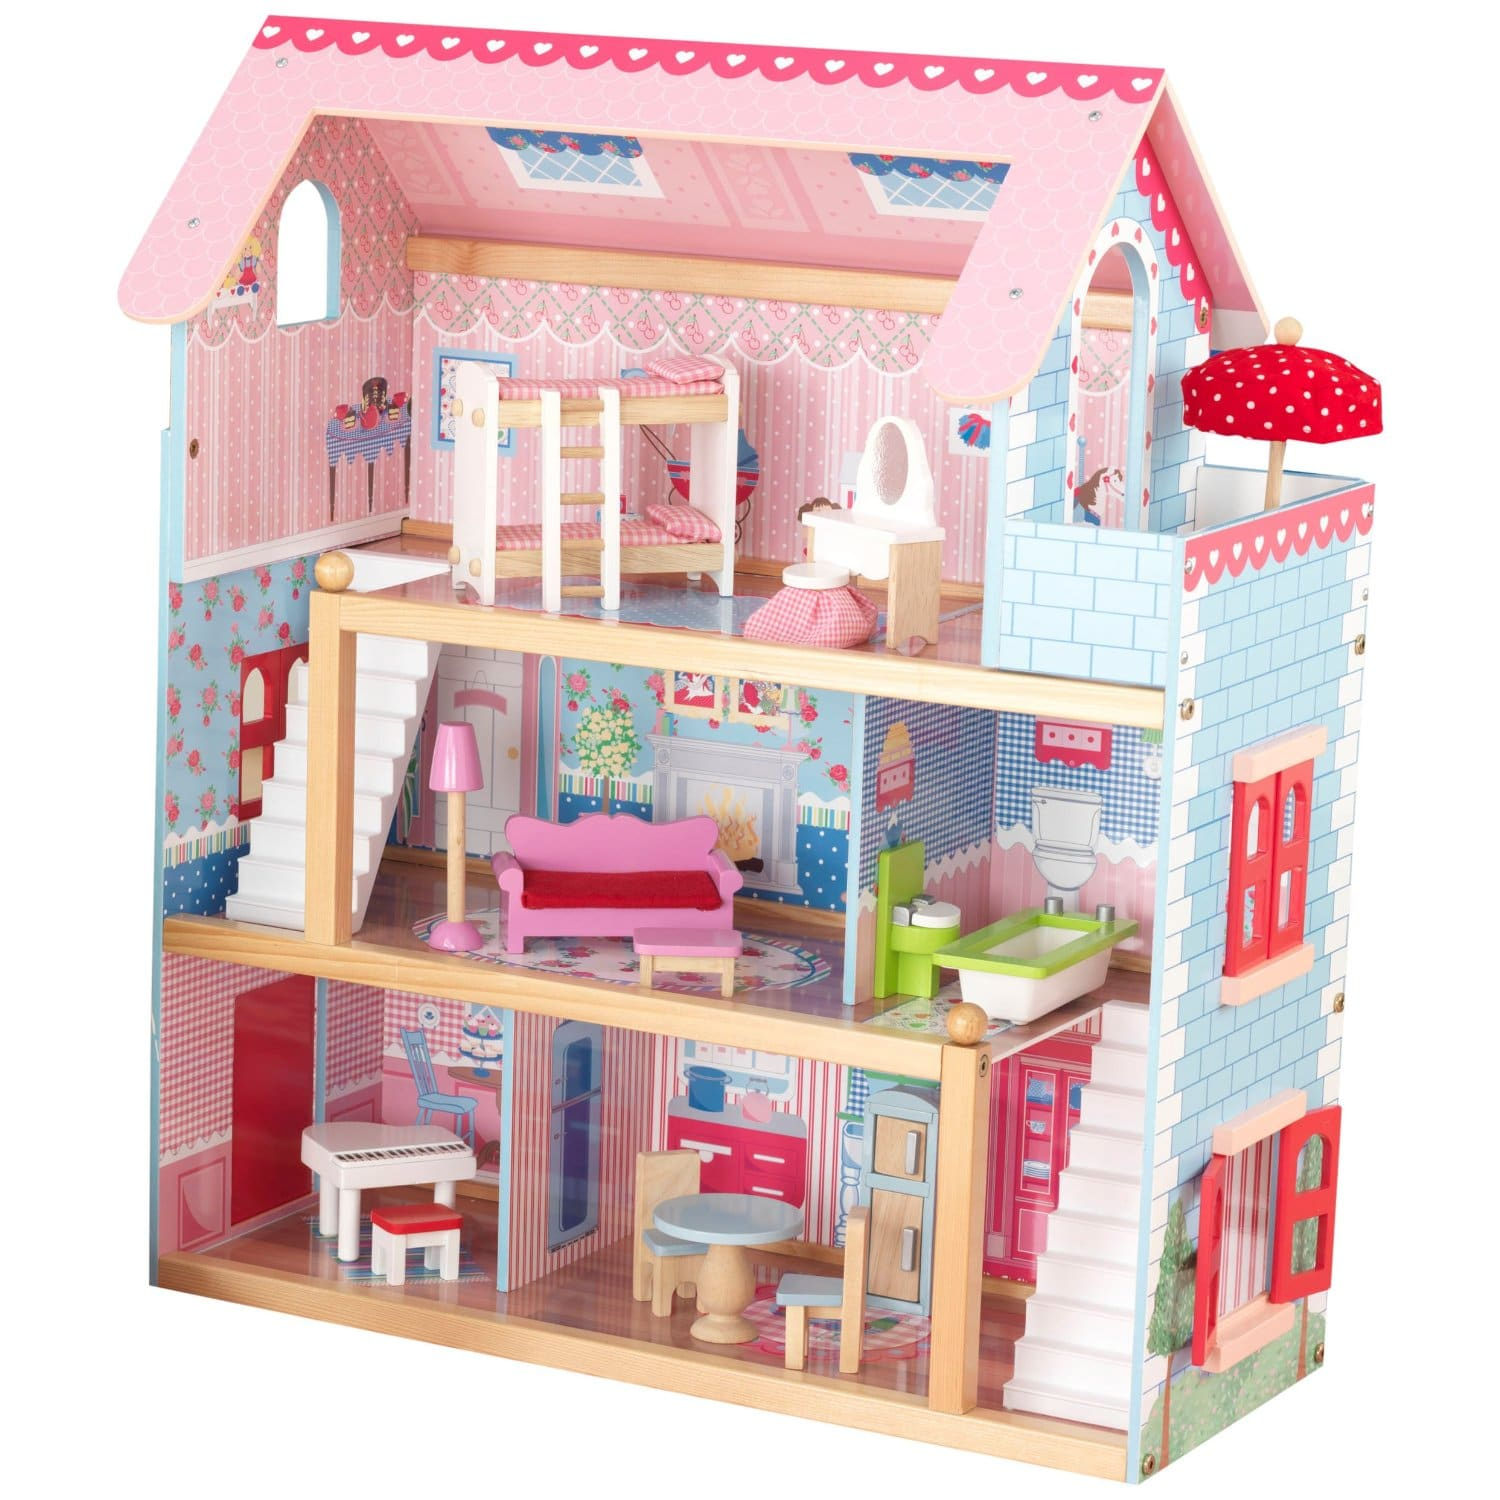 The Dolls House Perfect Diy Doll House